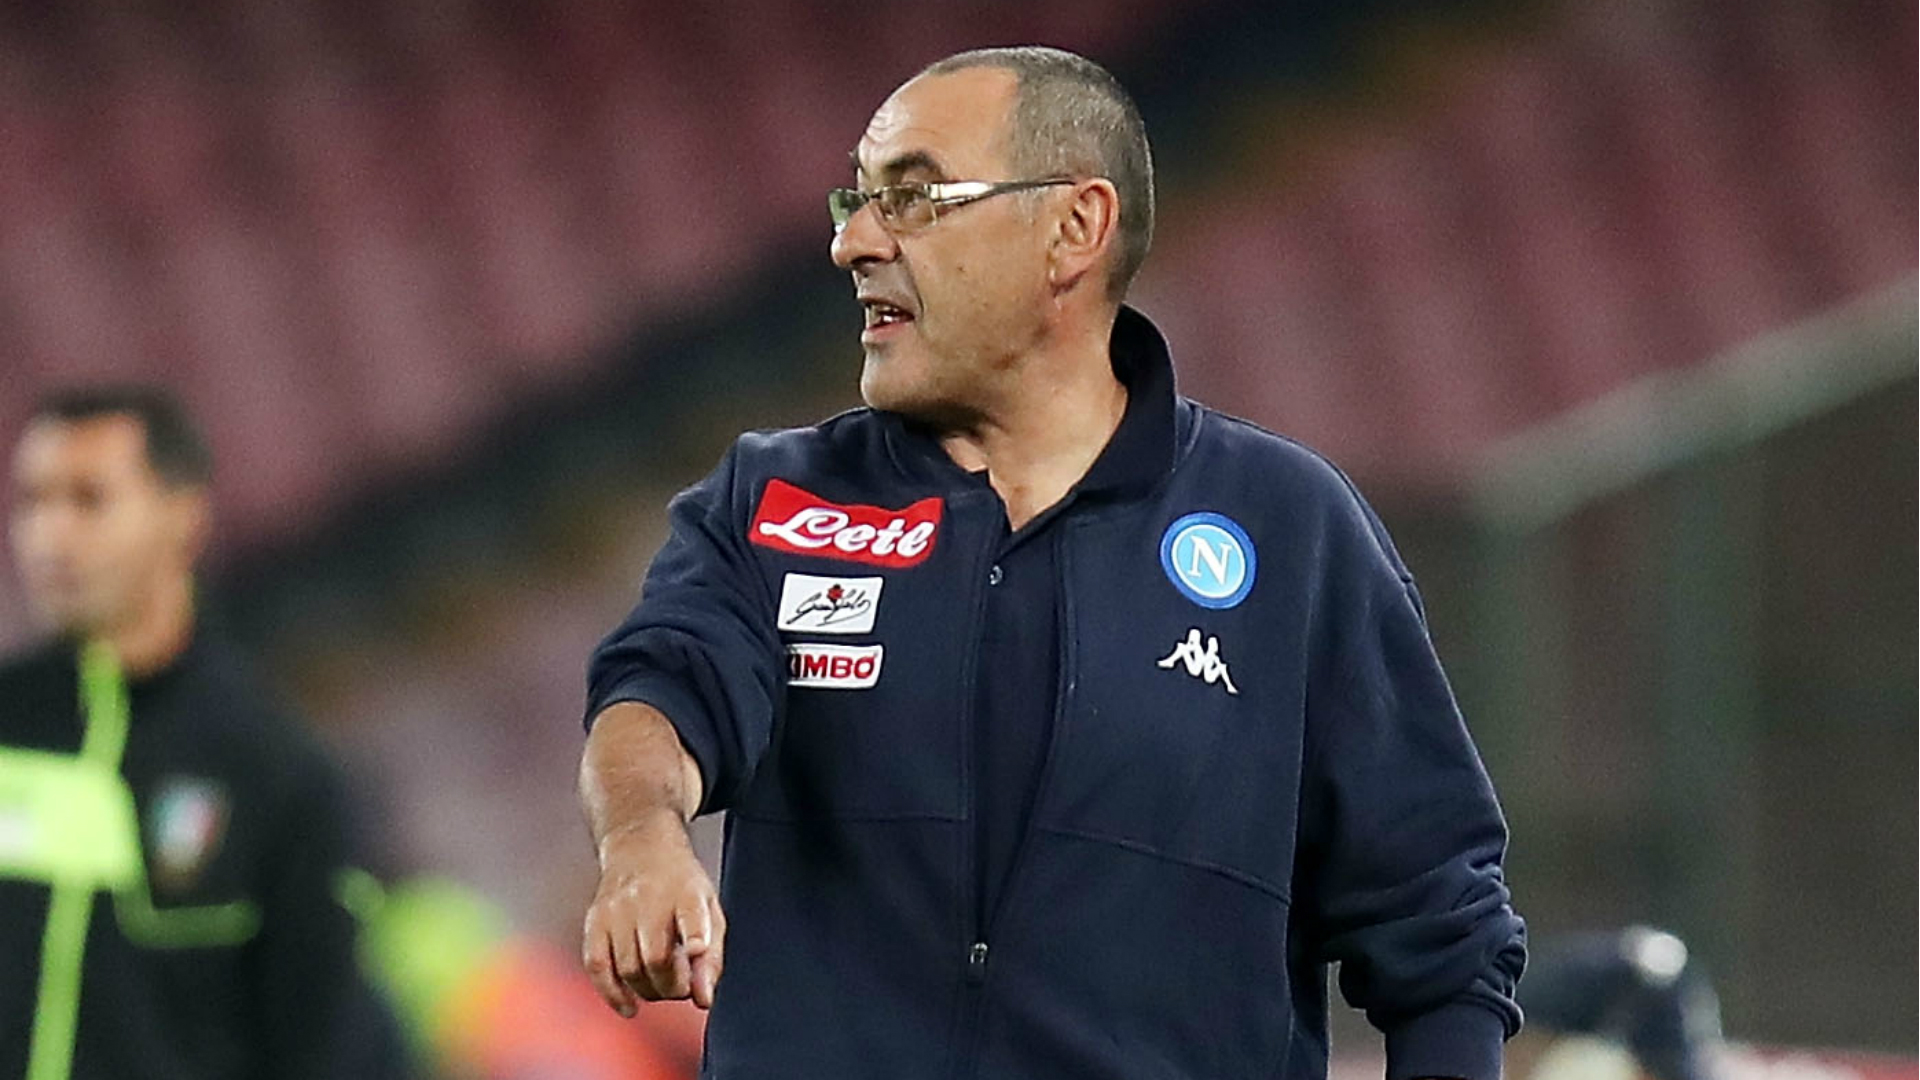 Here's what Napoli's Sarri had to say about Ventura, Insigne, Italy